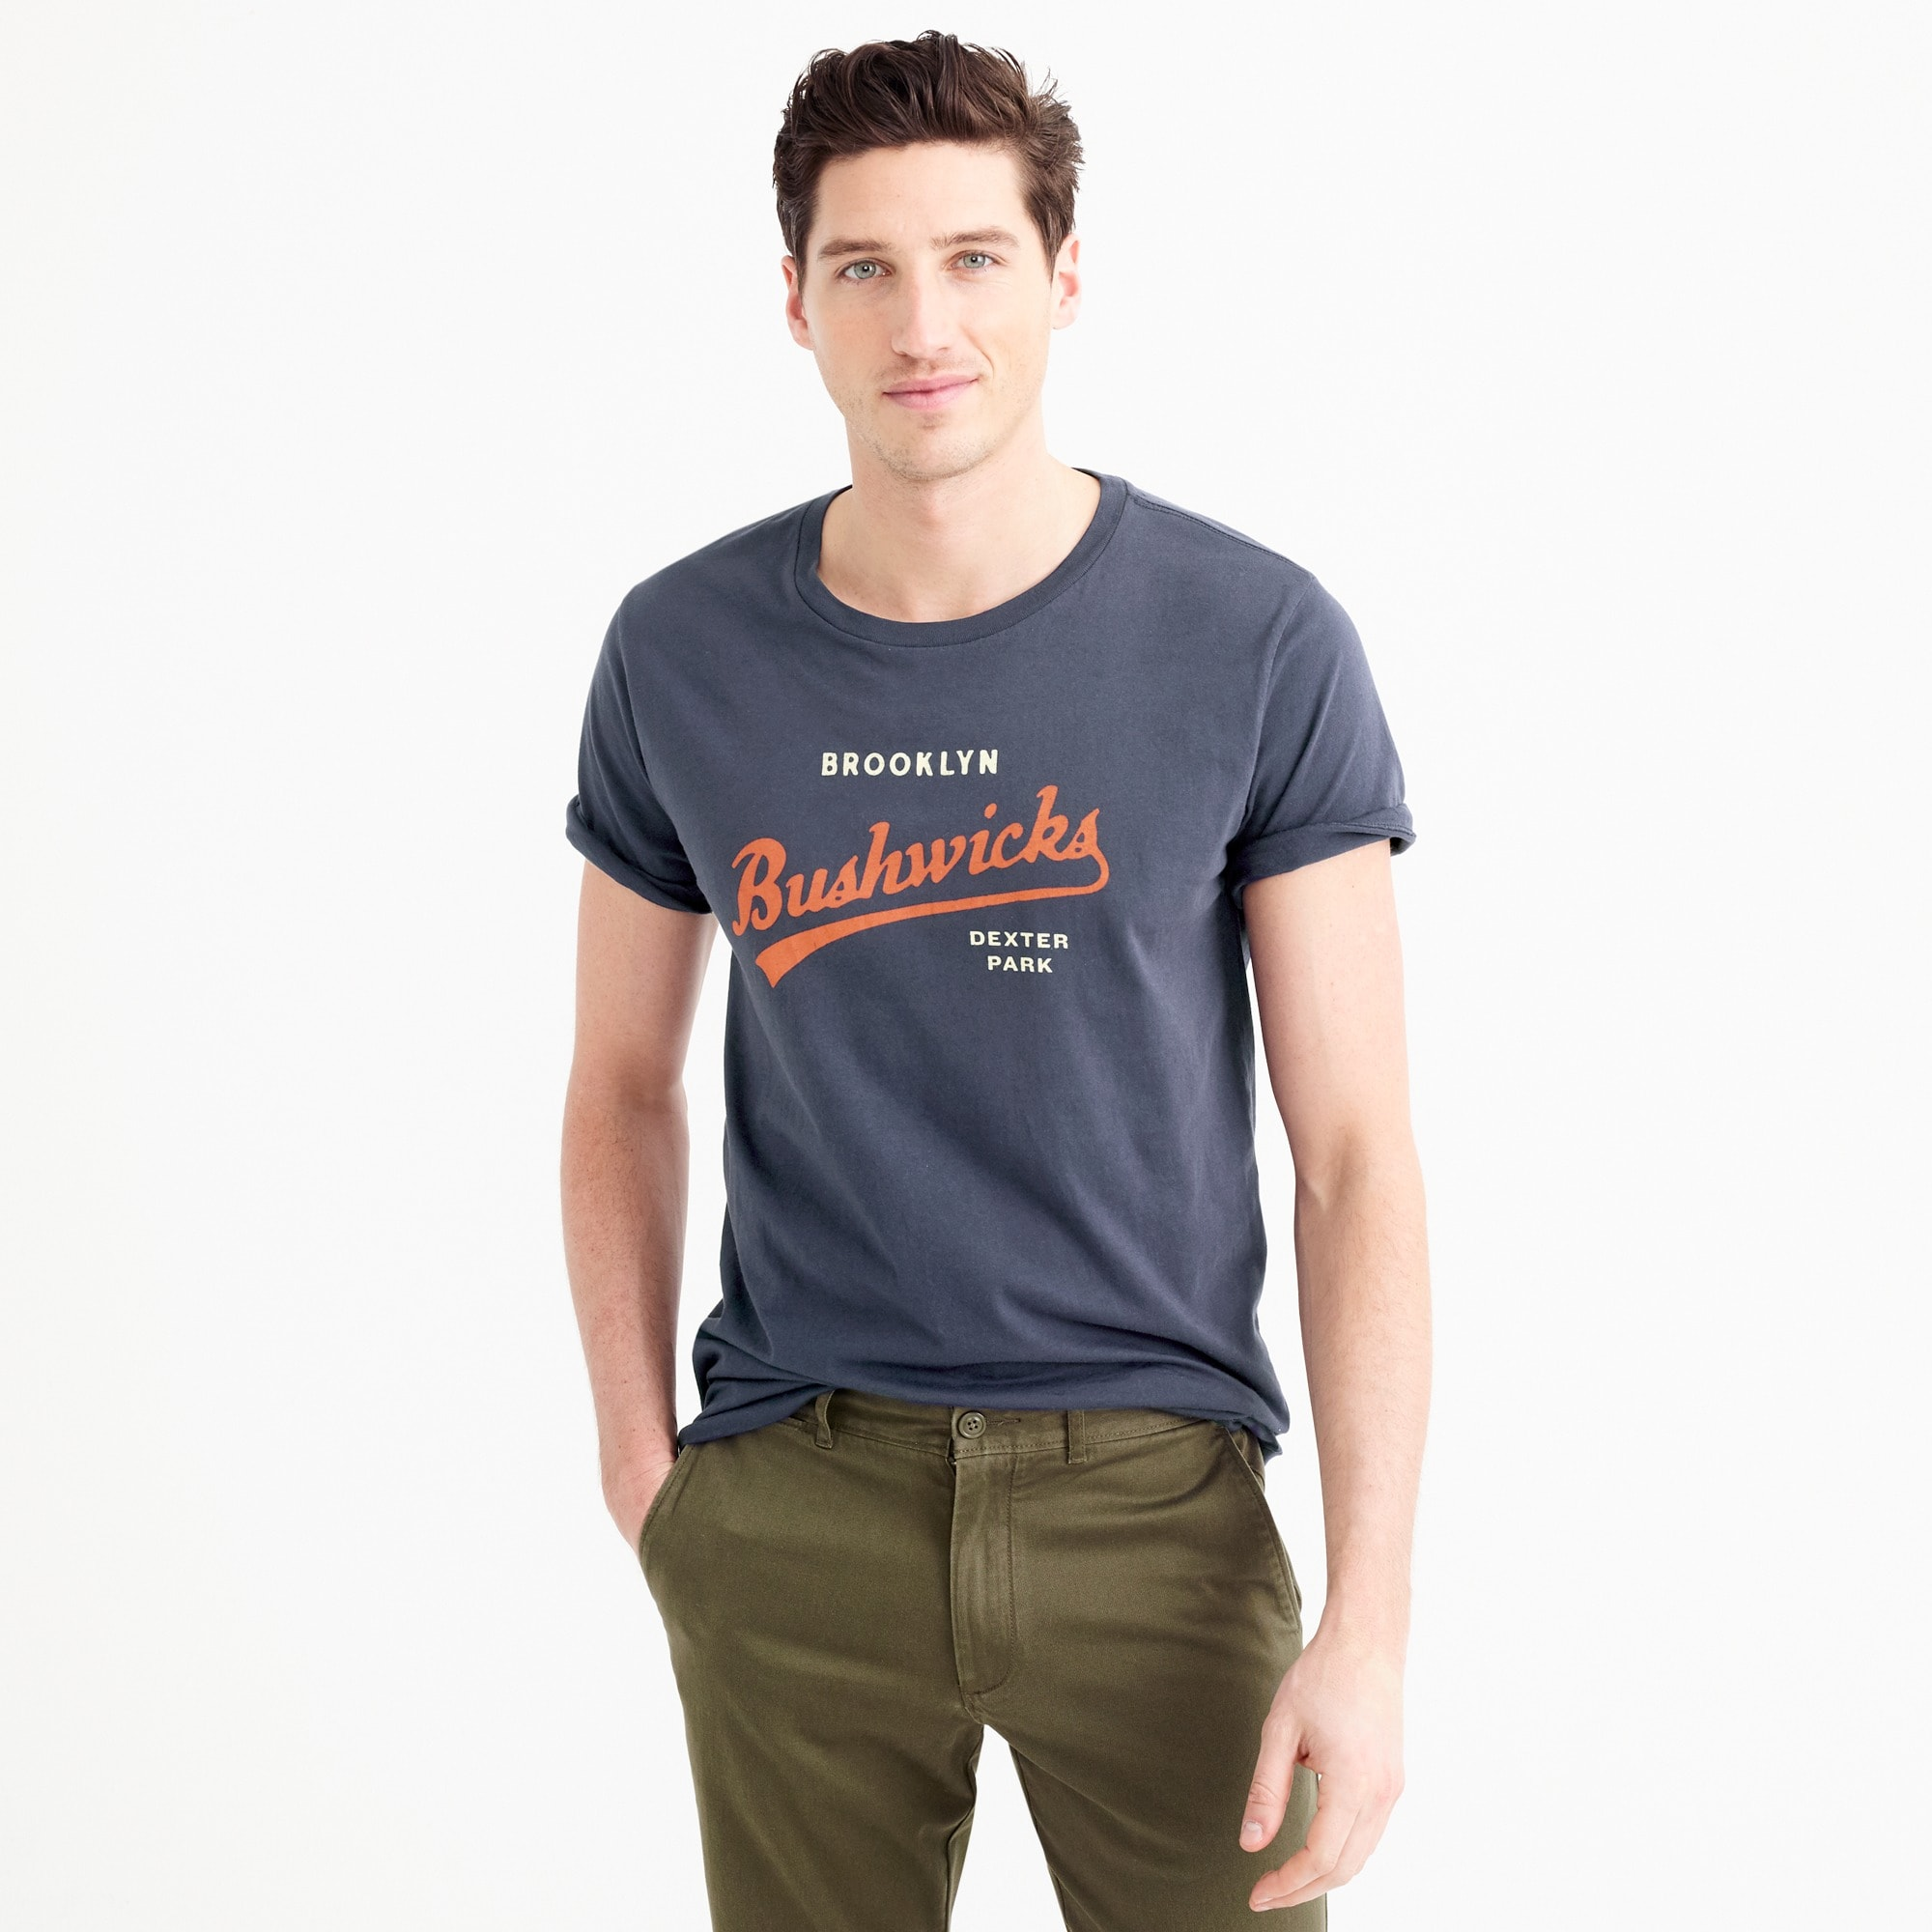 Ebbets Field Flannels® for J.Crew Brooklyn Bushwicks T-shirt